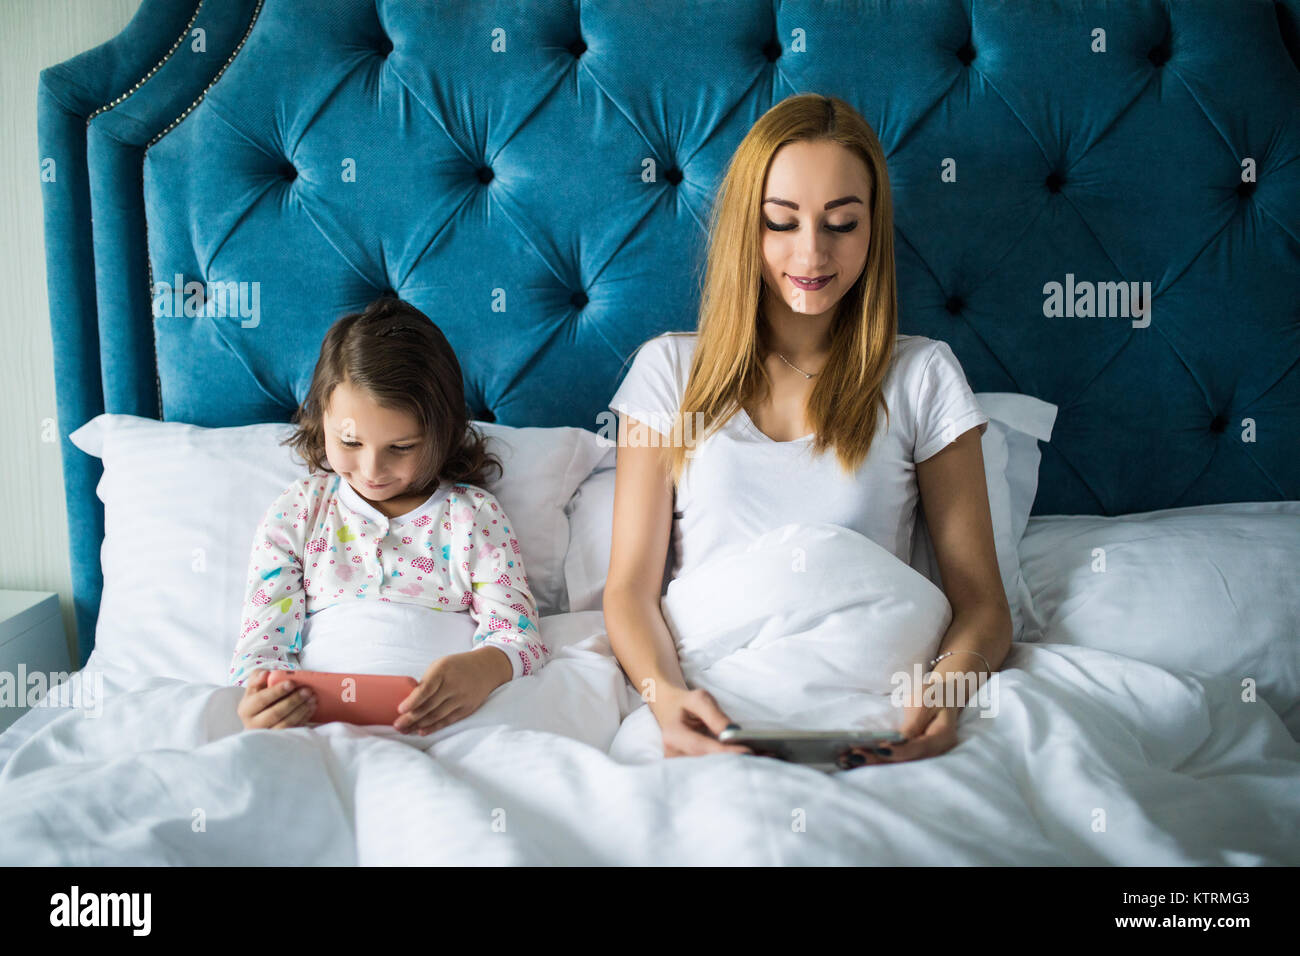 Smiling mom and daughter relaxing on the bed - Stock Image